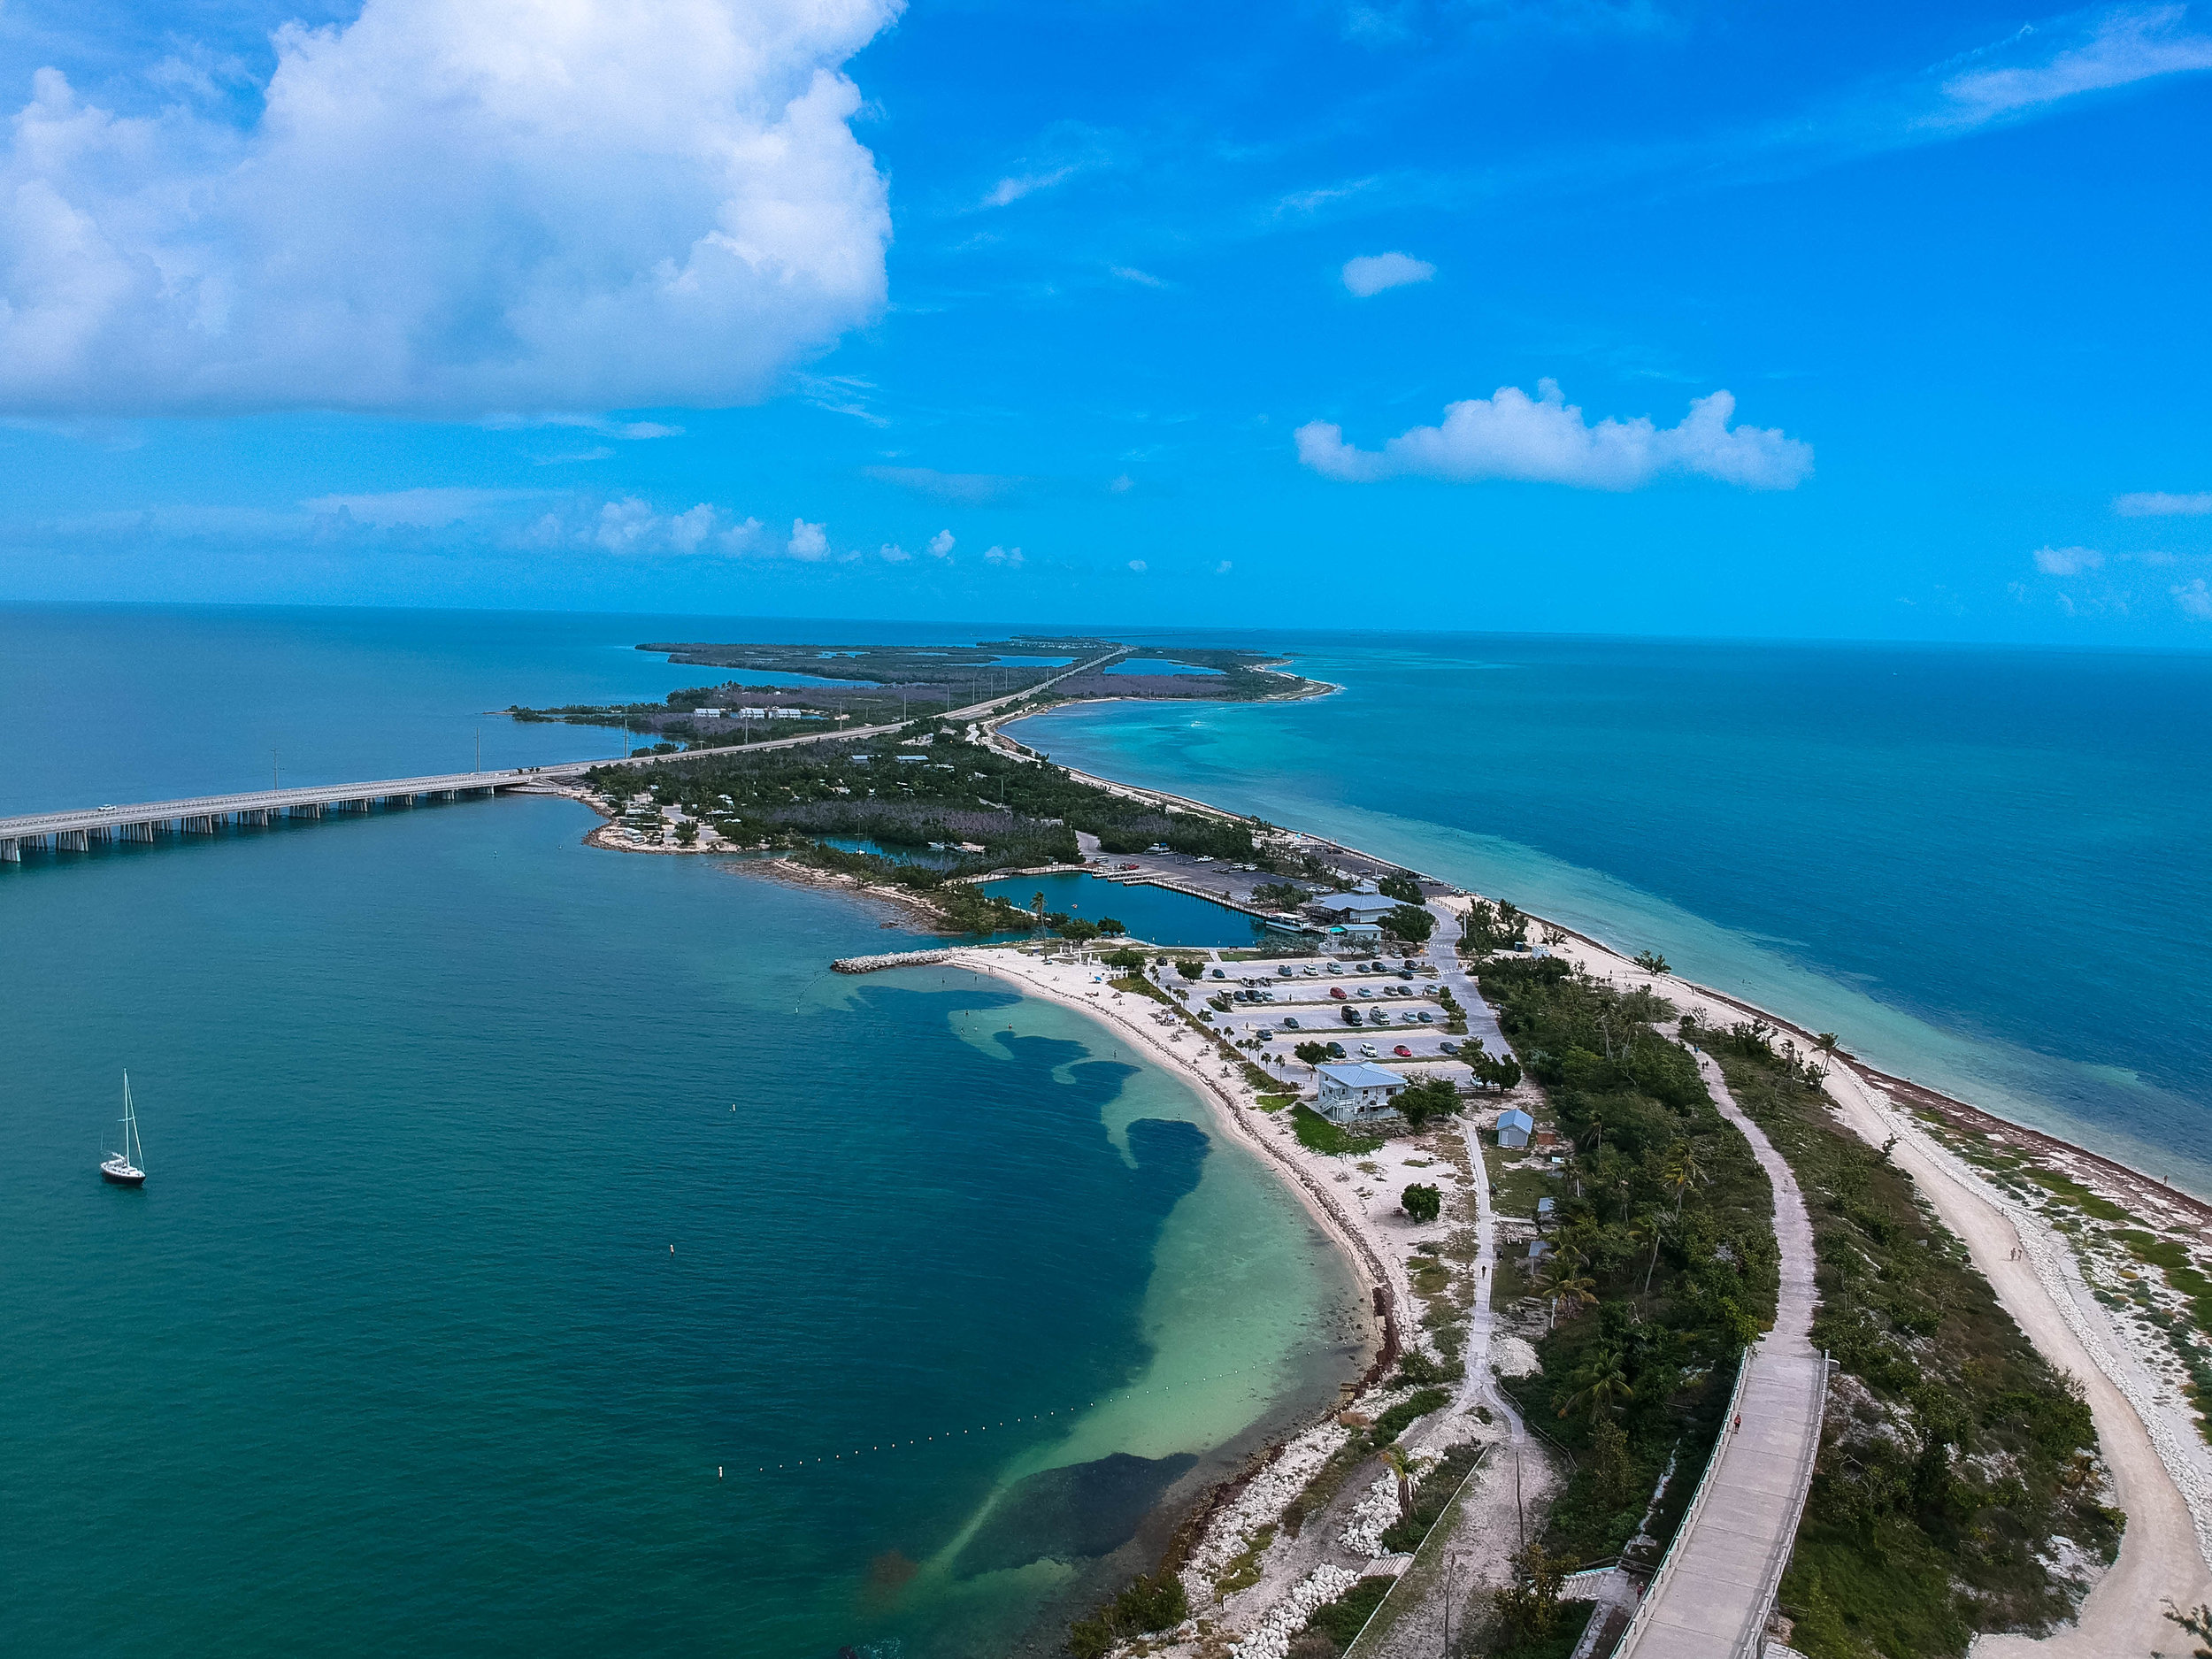 The Floriday Keys from above, as seen from Bahia Honda State Park.